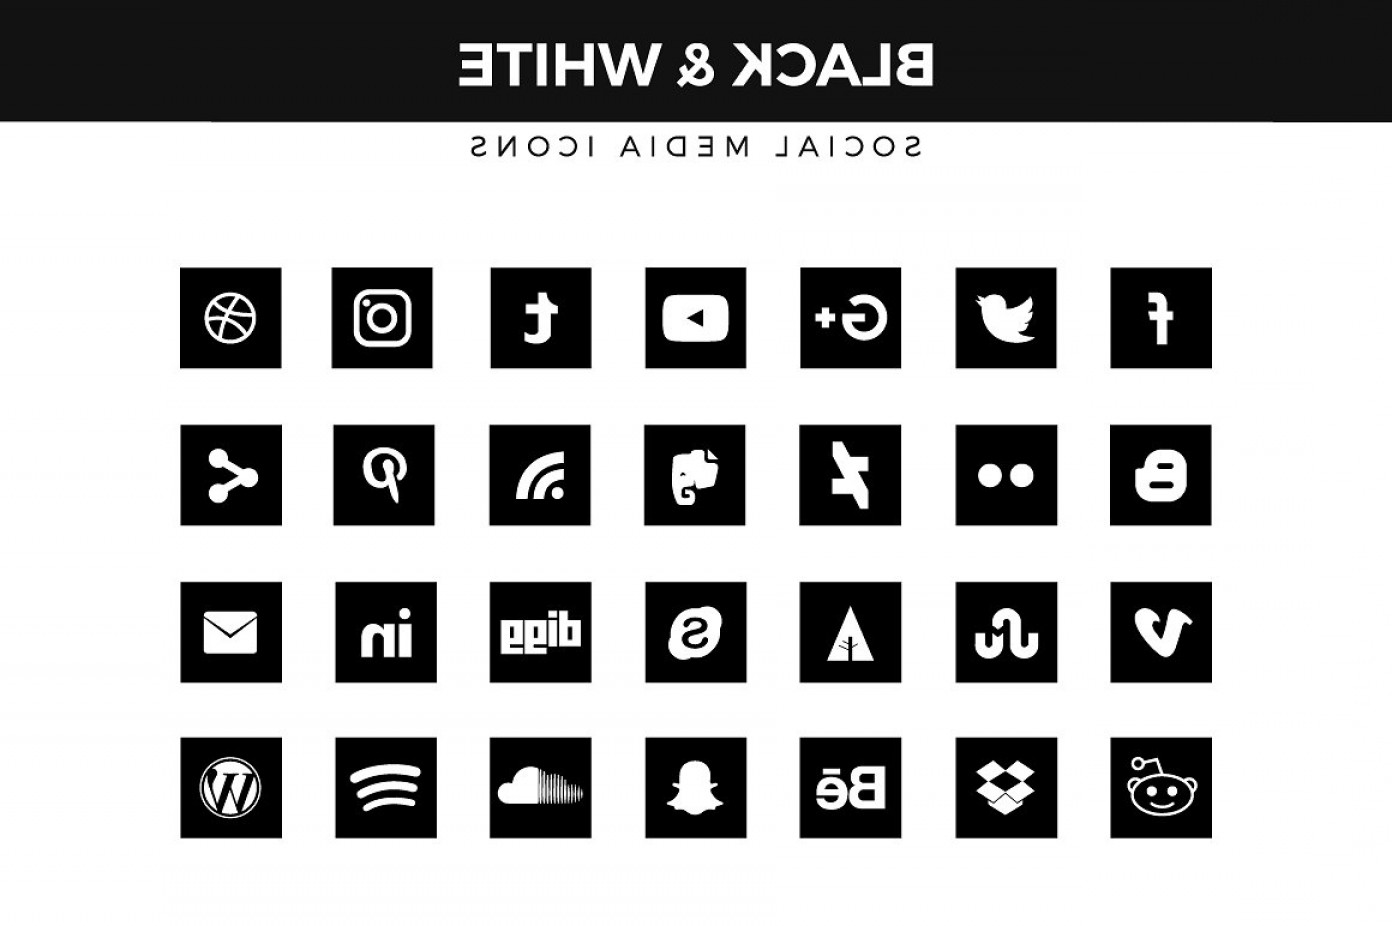 1392x926 Social Media Icons Vector Black And White Lazttweet